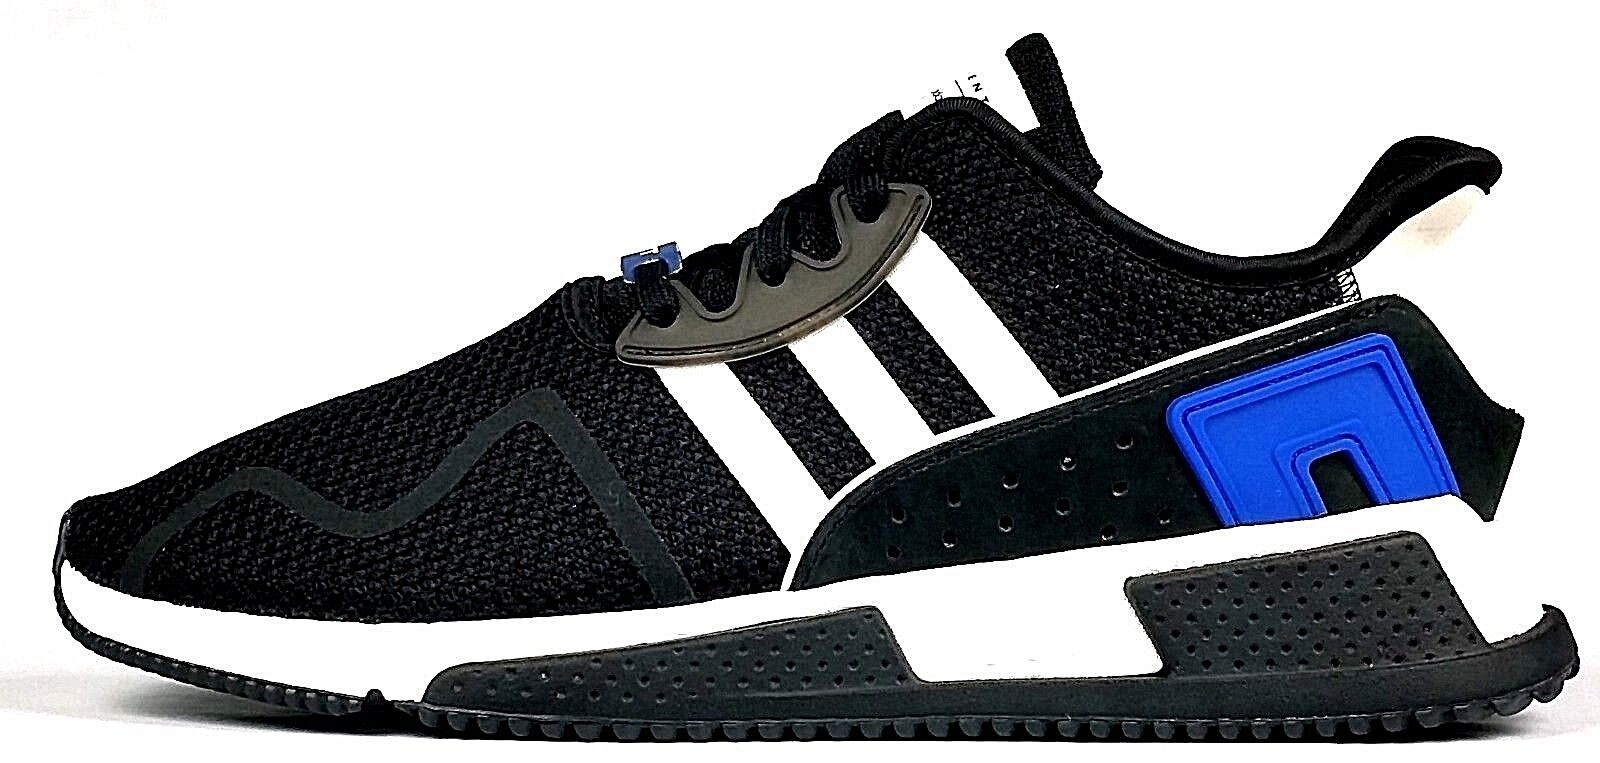 Adidas Originals EQT Cushion ADV Men's Casual Casual Casual shoes Core Black Royal bluee White 9622d1